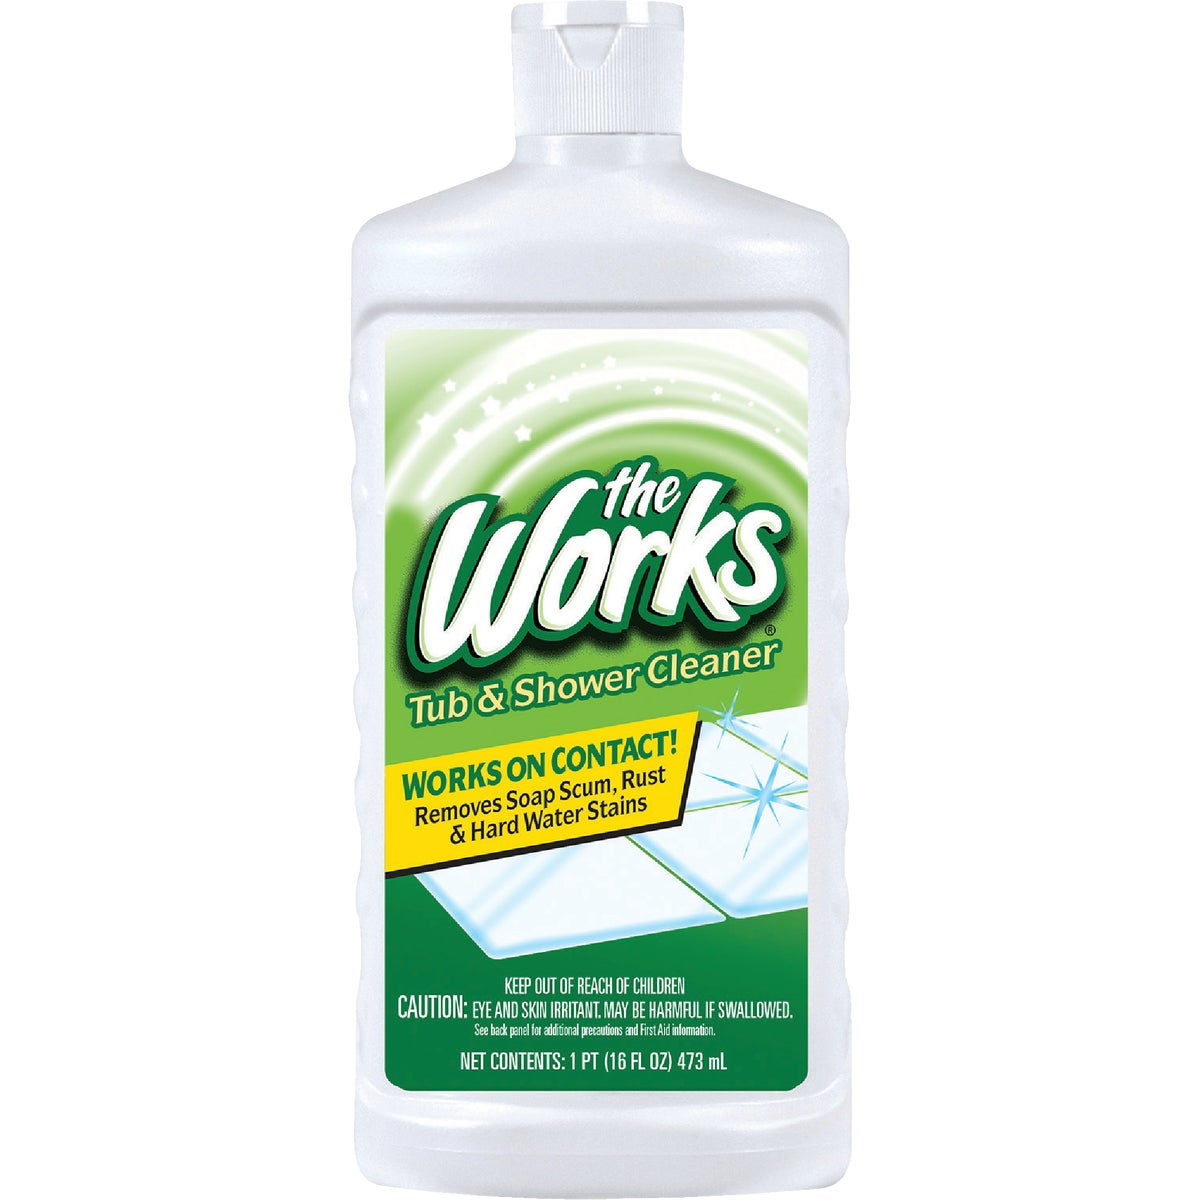 TUB/SHOWER WORKS CLEANER